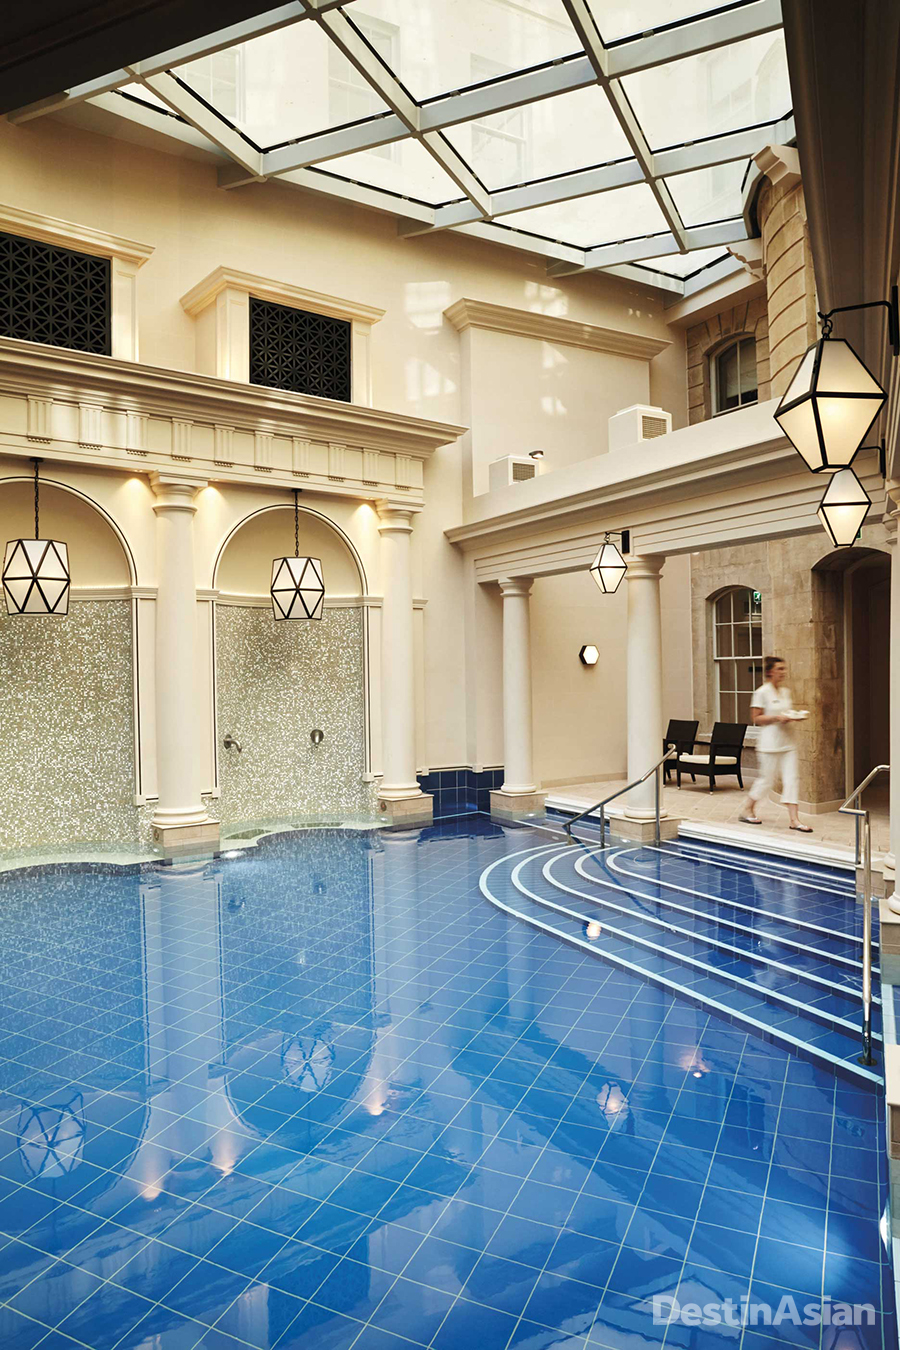 The Roman-style bathing atrium at The Gainsborough's Spa Village.